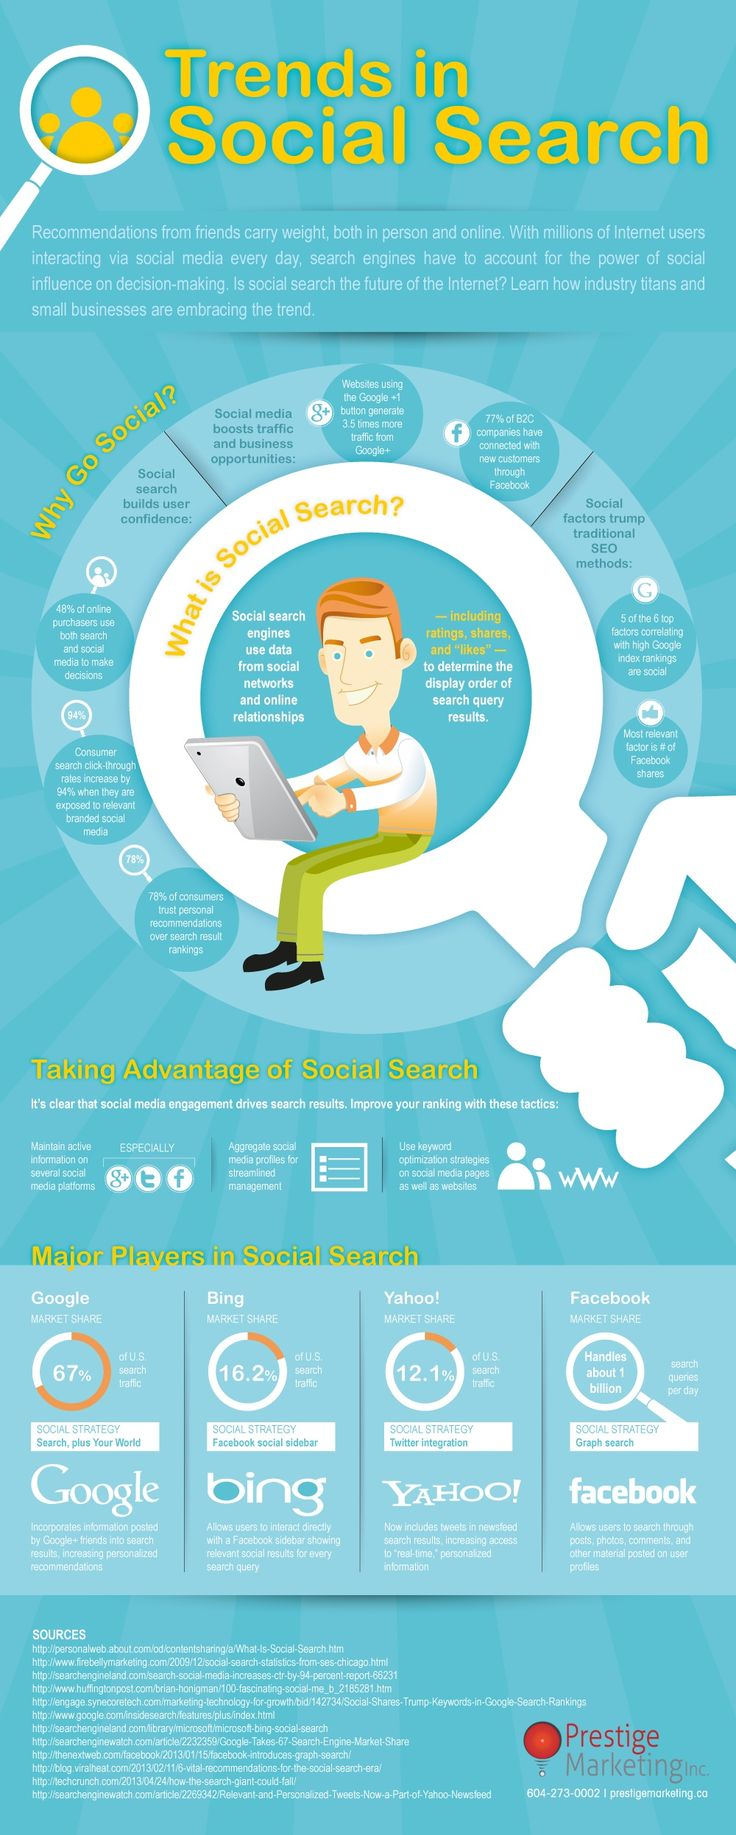 Trends in Social Search #infographic